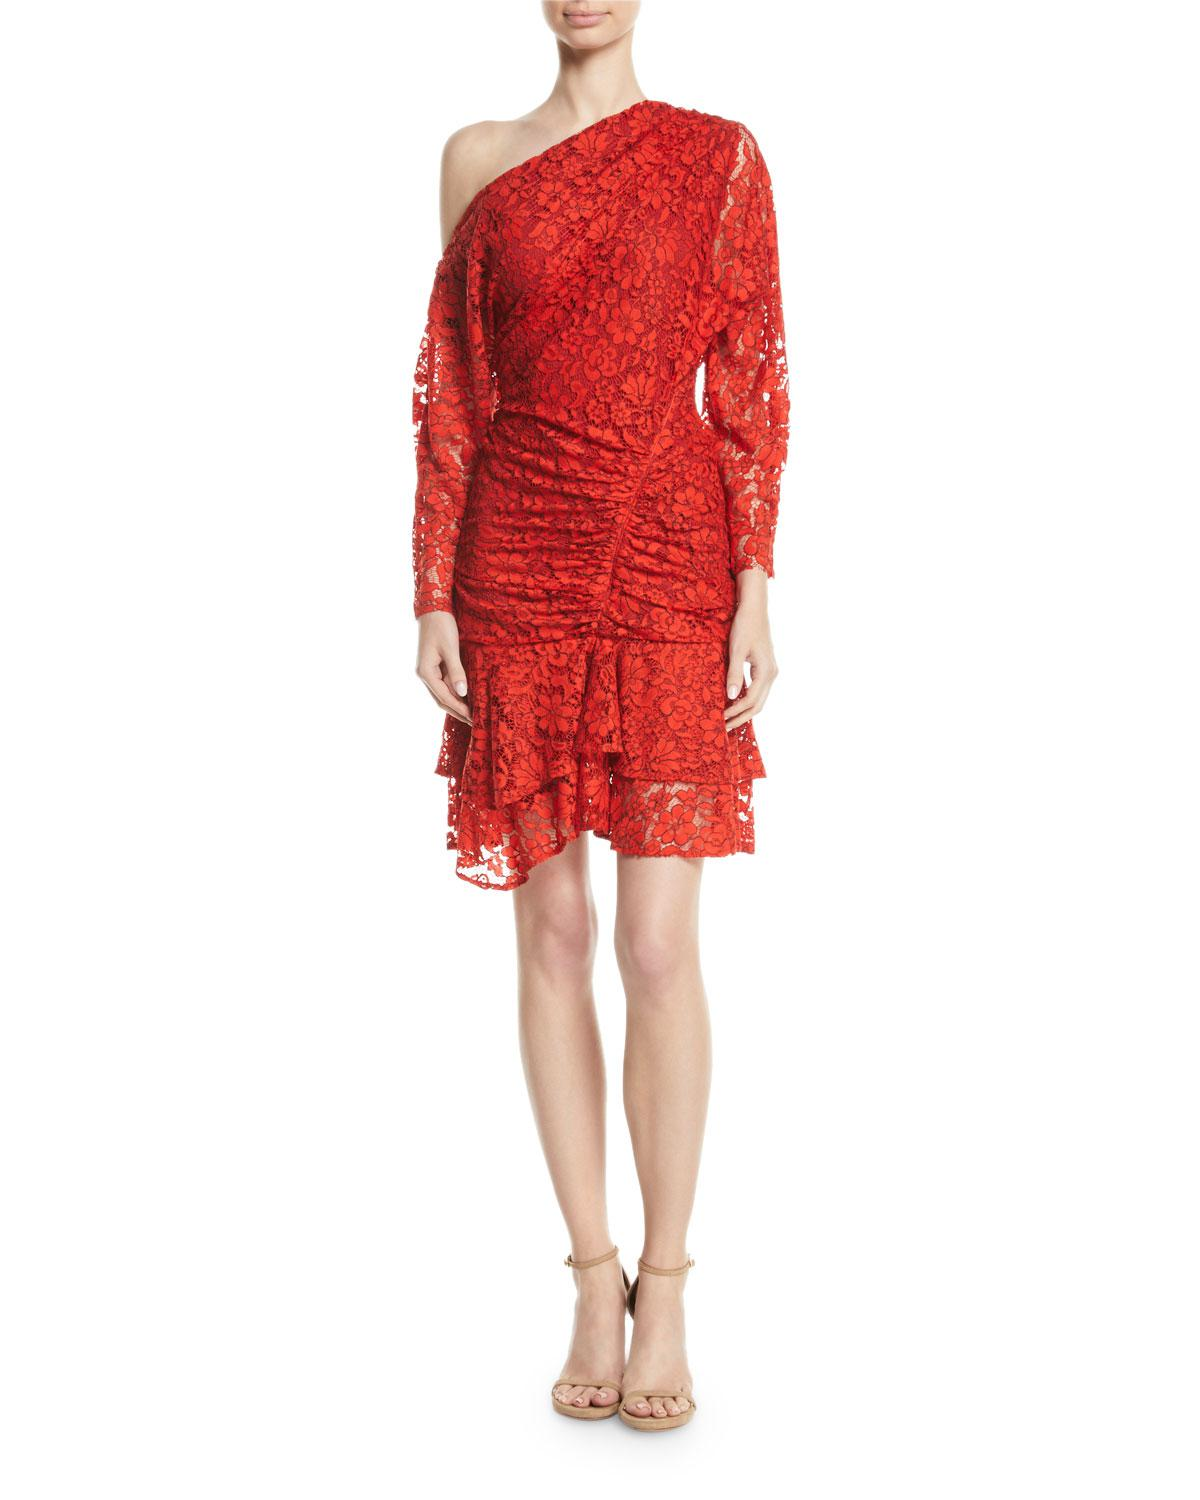 facd60903fabc Camilla & Marc Clemence Off-shoulder Dress in Red - Lyst